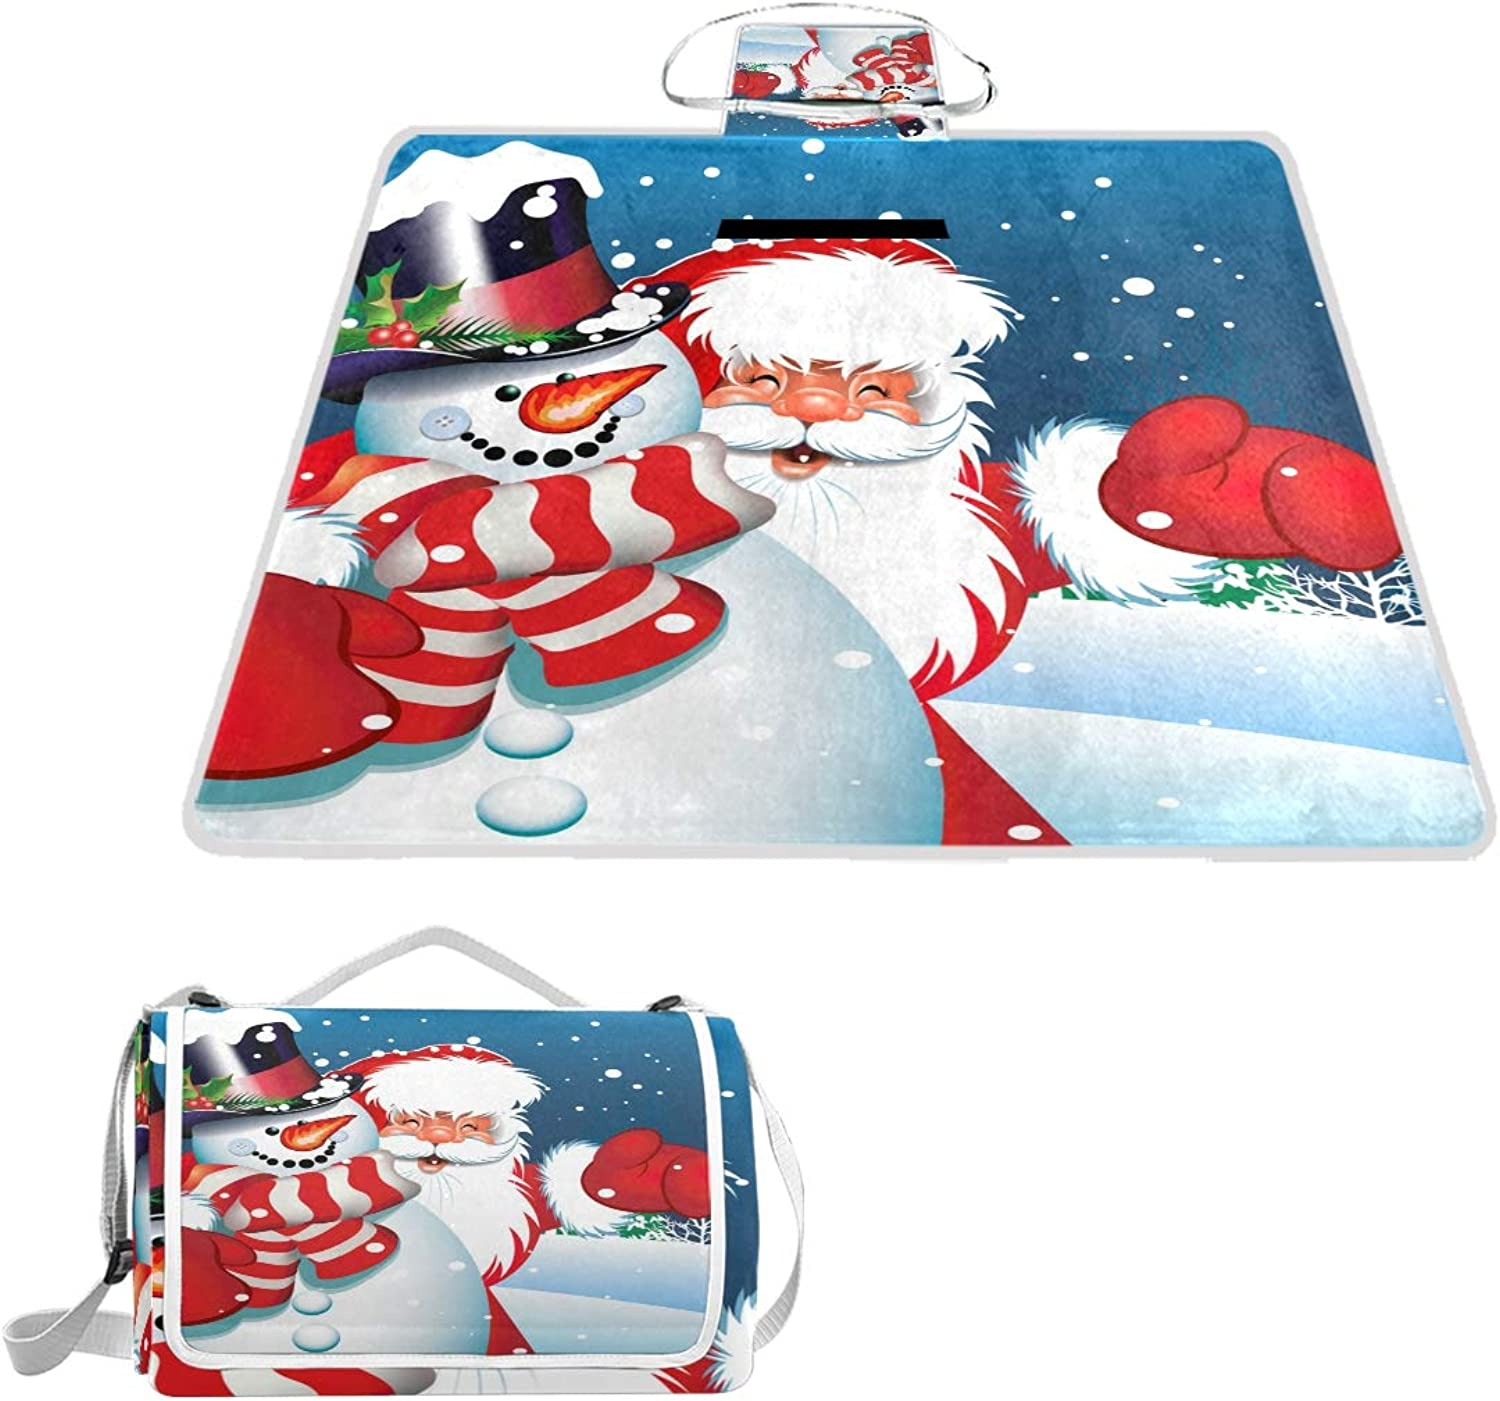 MASSIKOA Christmas Santa and Snowman Picnic Blanket Waterproof Outdoor Blanket Foldable Picnic Handy Mat Tote for Beach Camping Hiking